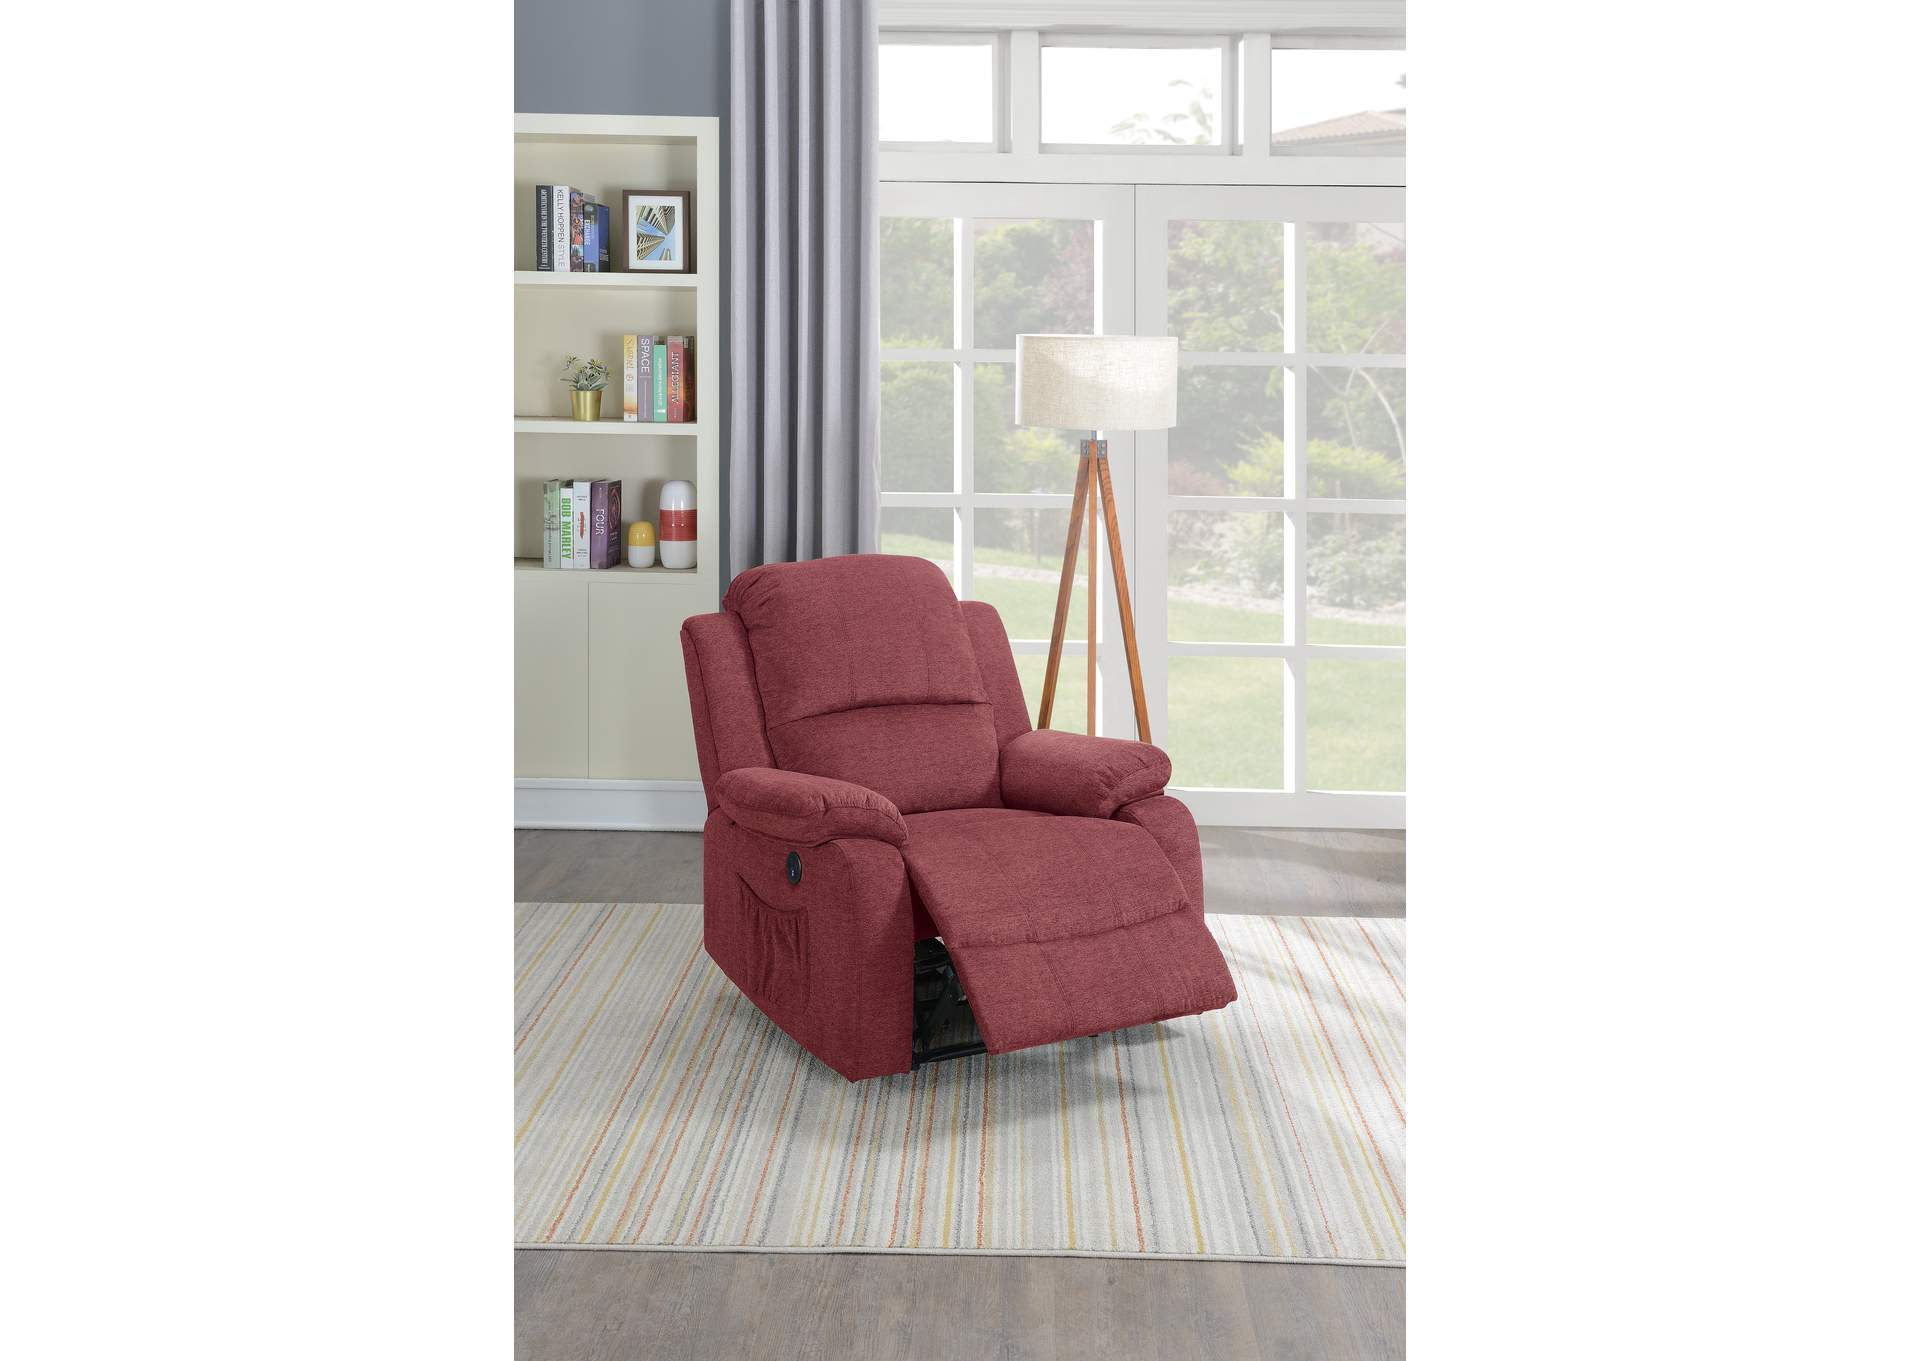 Taiyus Paprika Red Velvet Power Recliner,Poundex